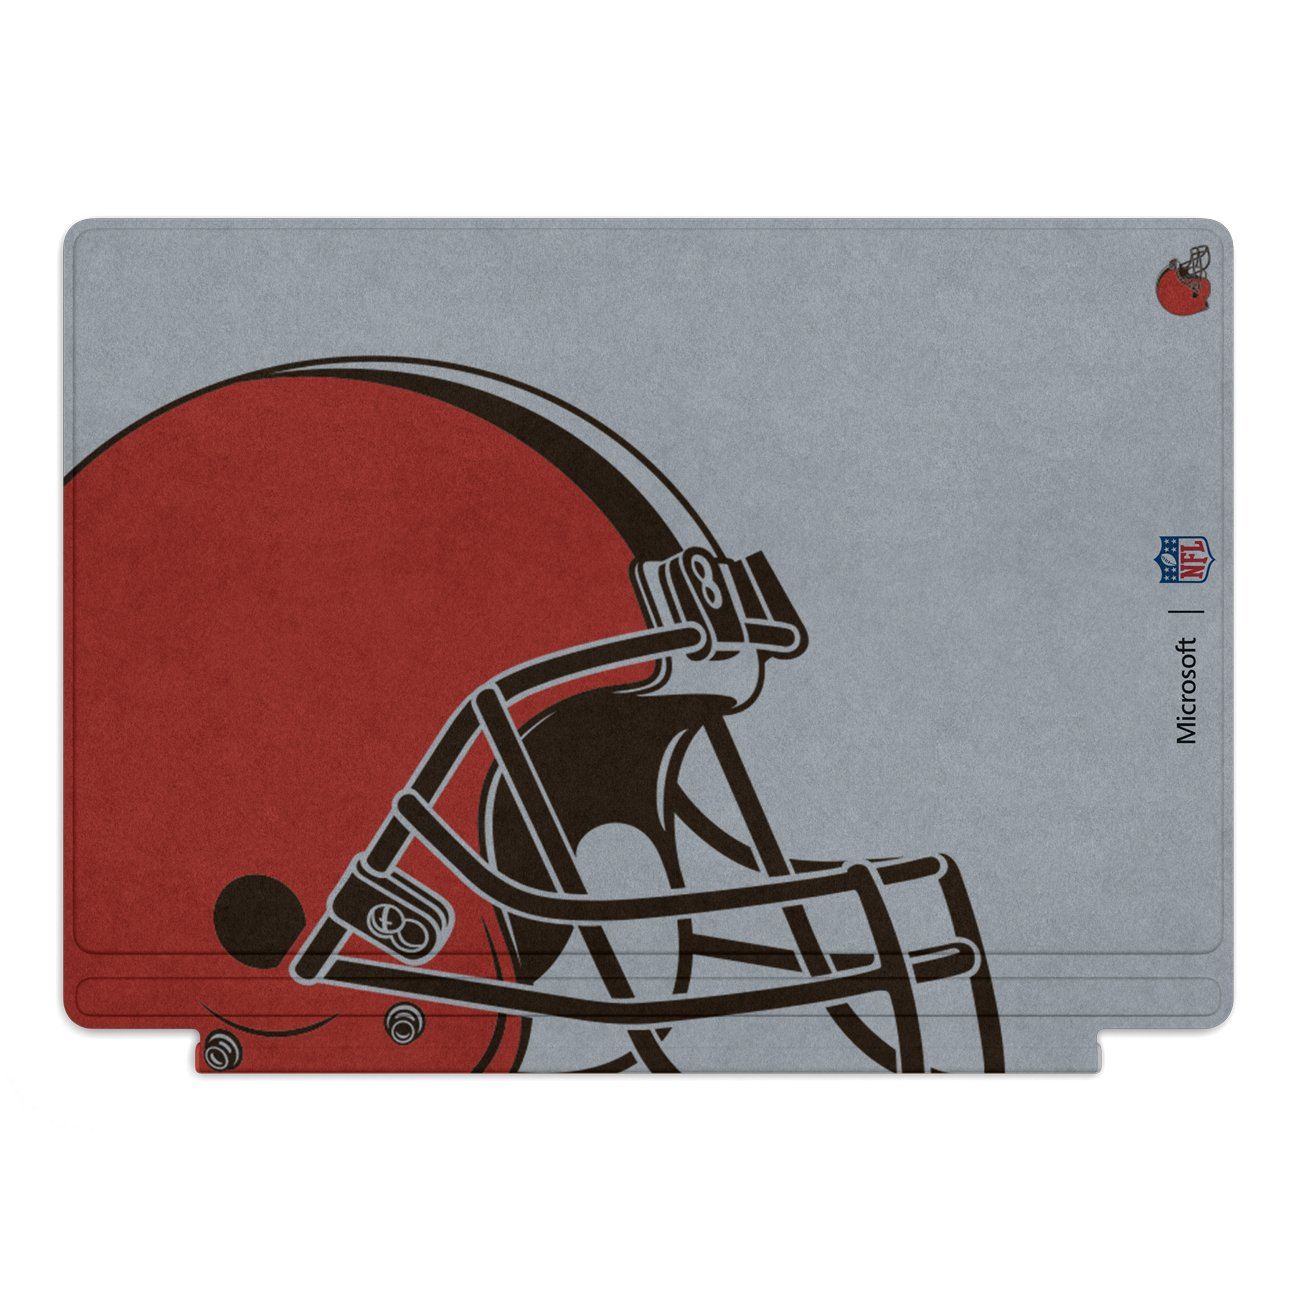 Microsoft CE QC7-00125 Surface Pro 4 Special Edition NFL Type Cover England Patriots